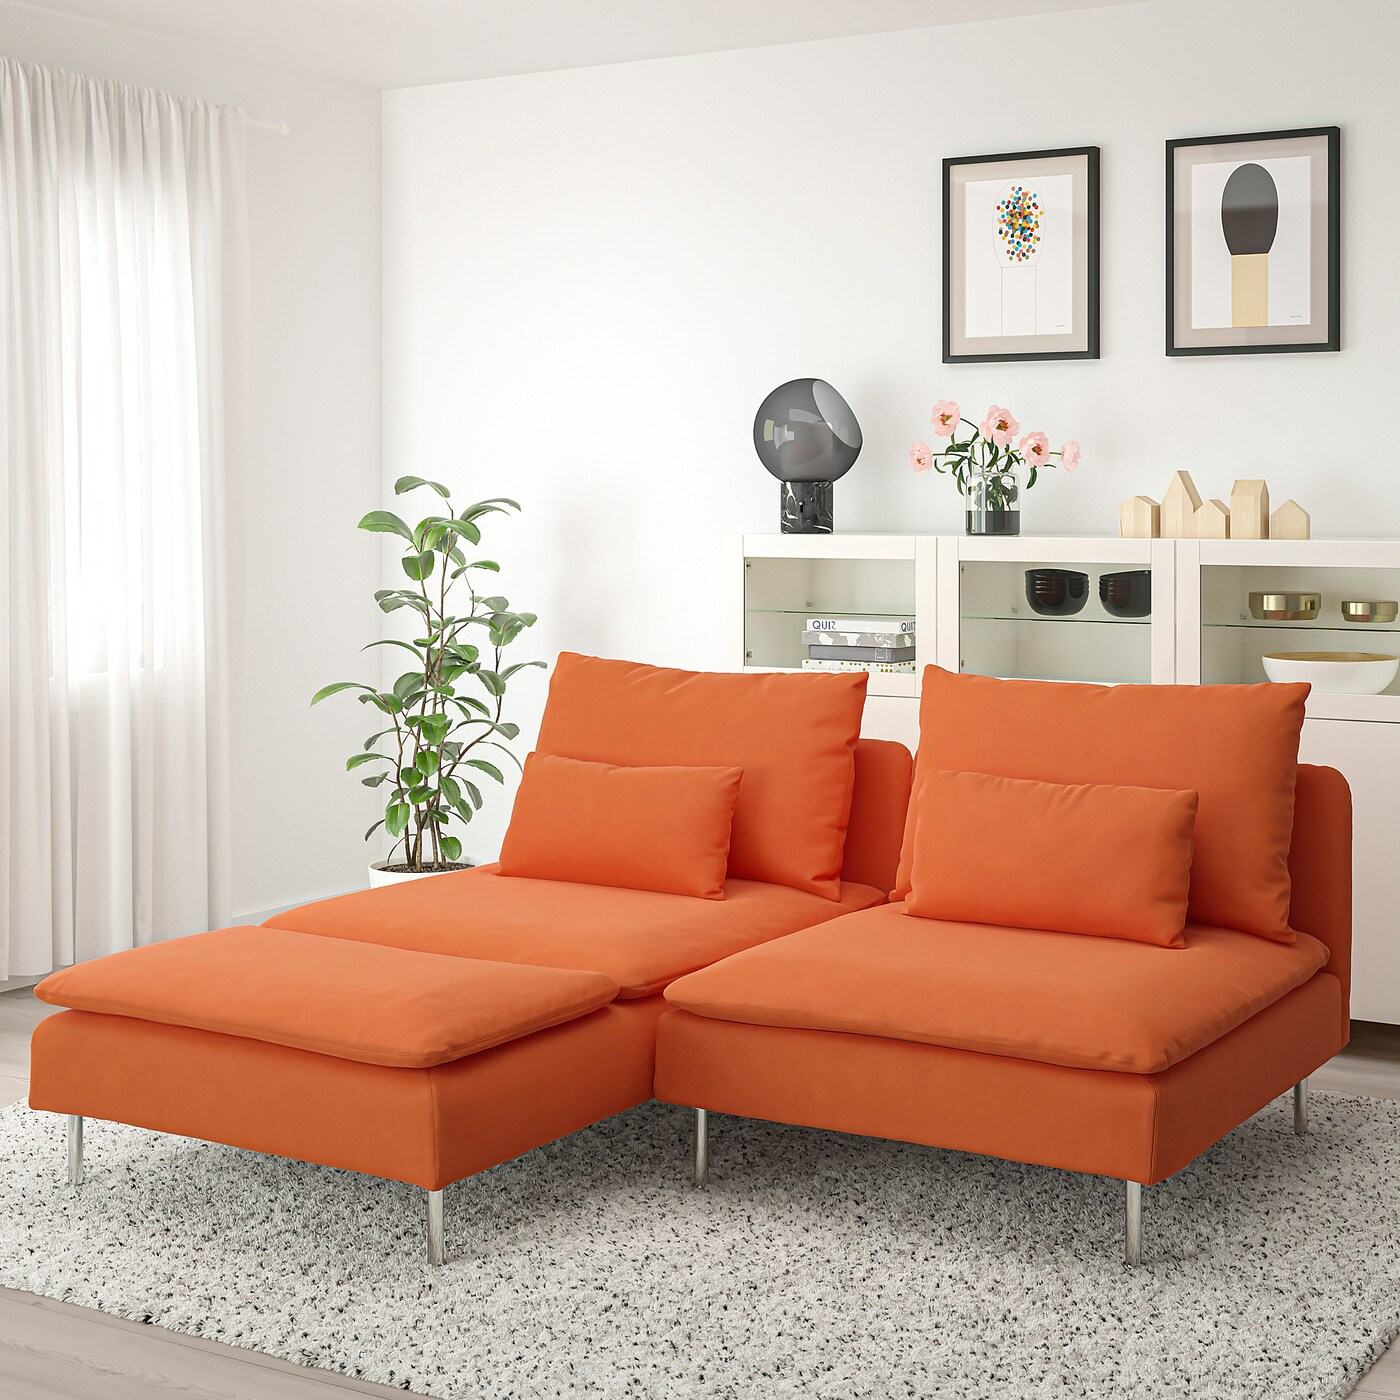 SÖderhamn 2 Seat Sofa With Chaise Longue Samsta Orange Ikea